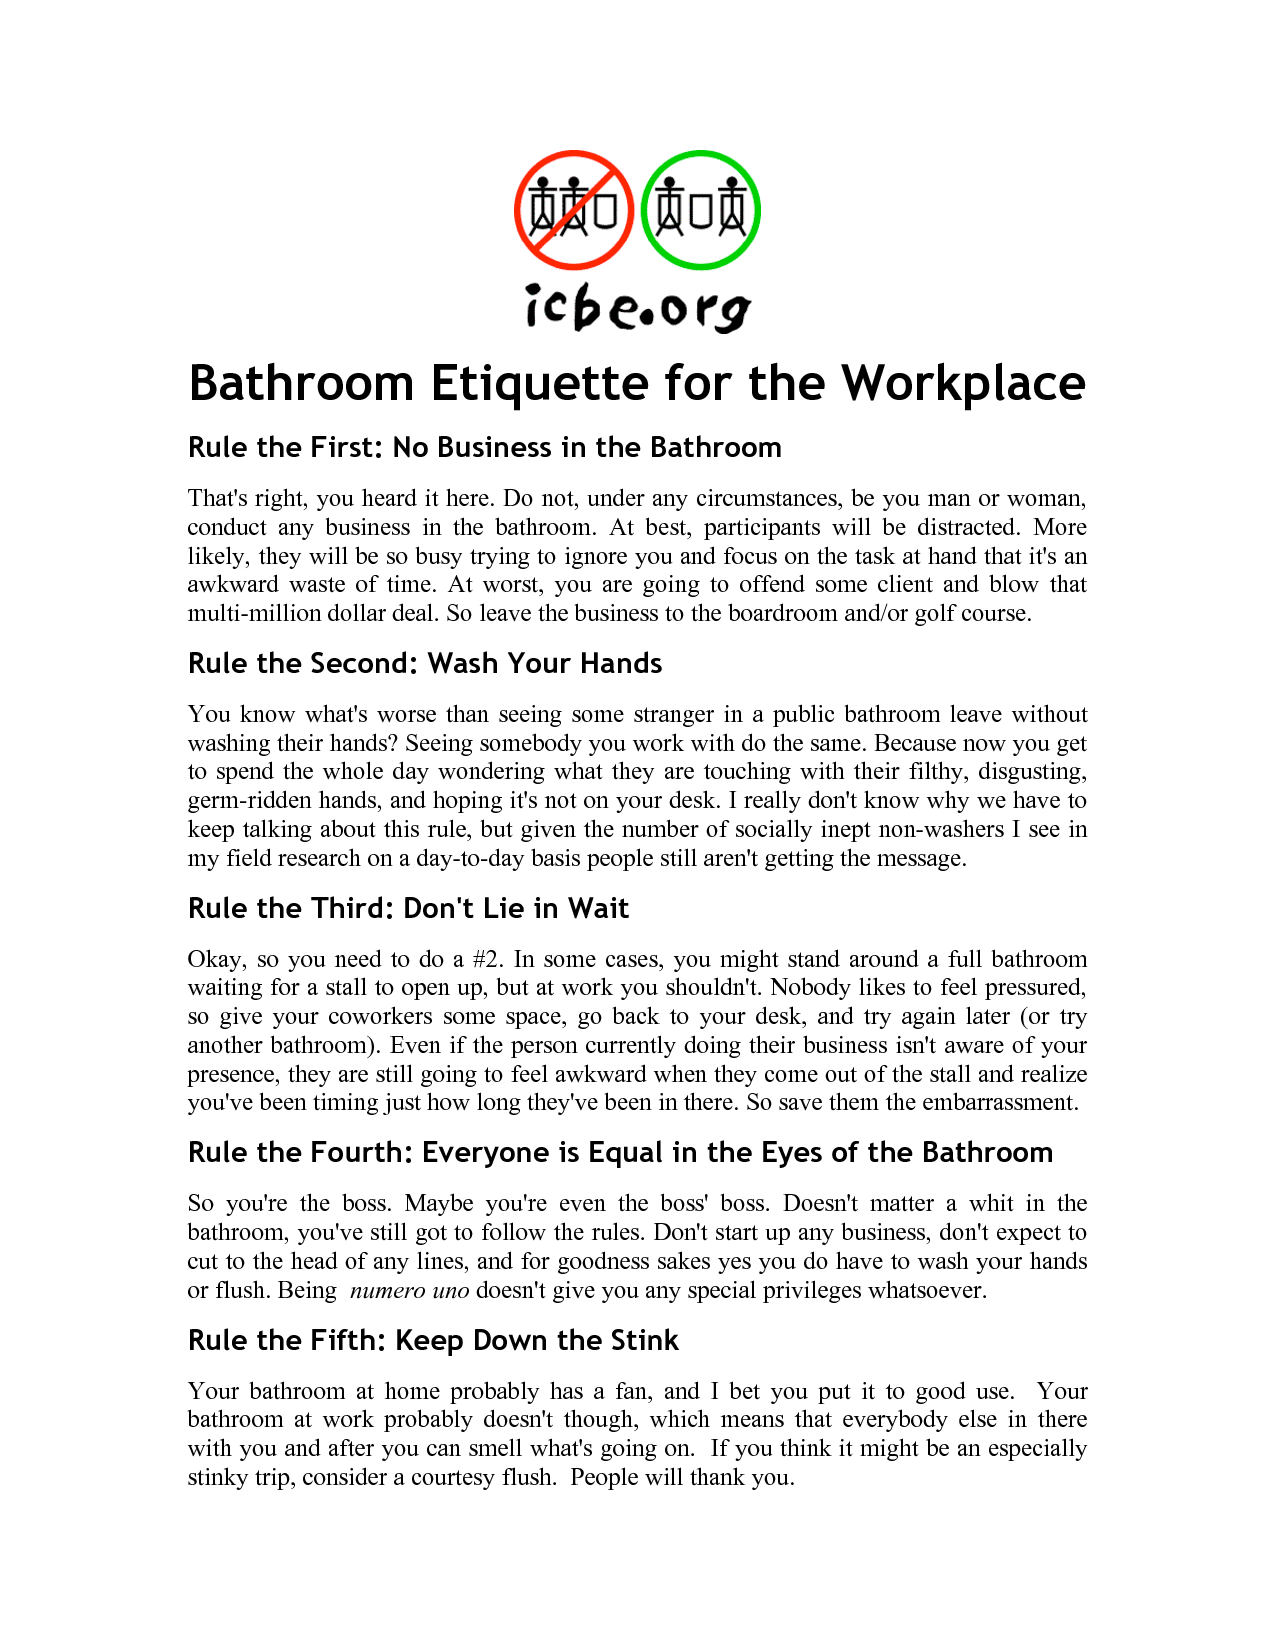 toilet bathrooms at a bathroom etiquette uk guide to work